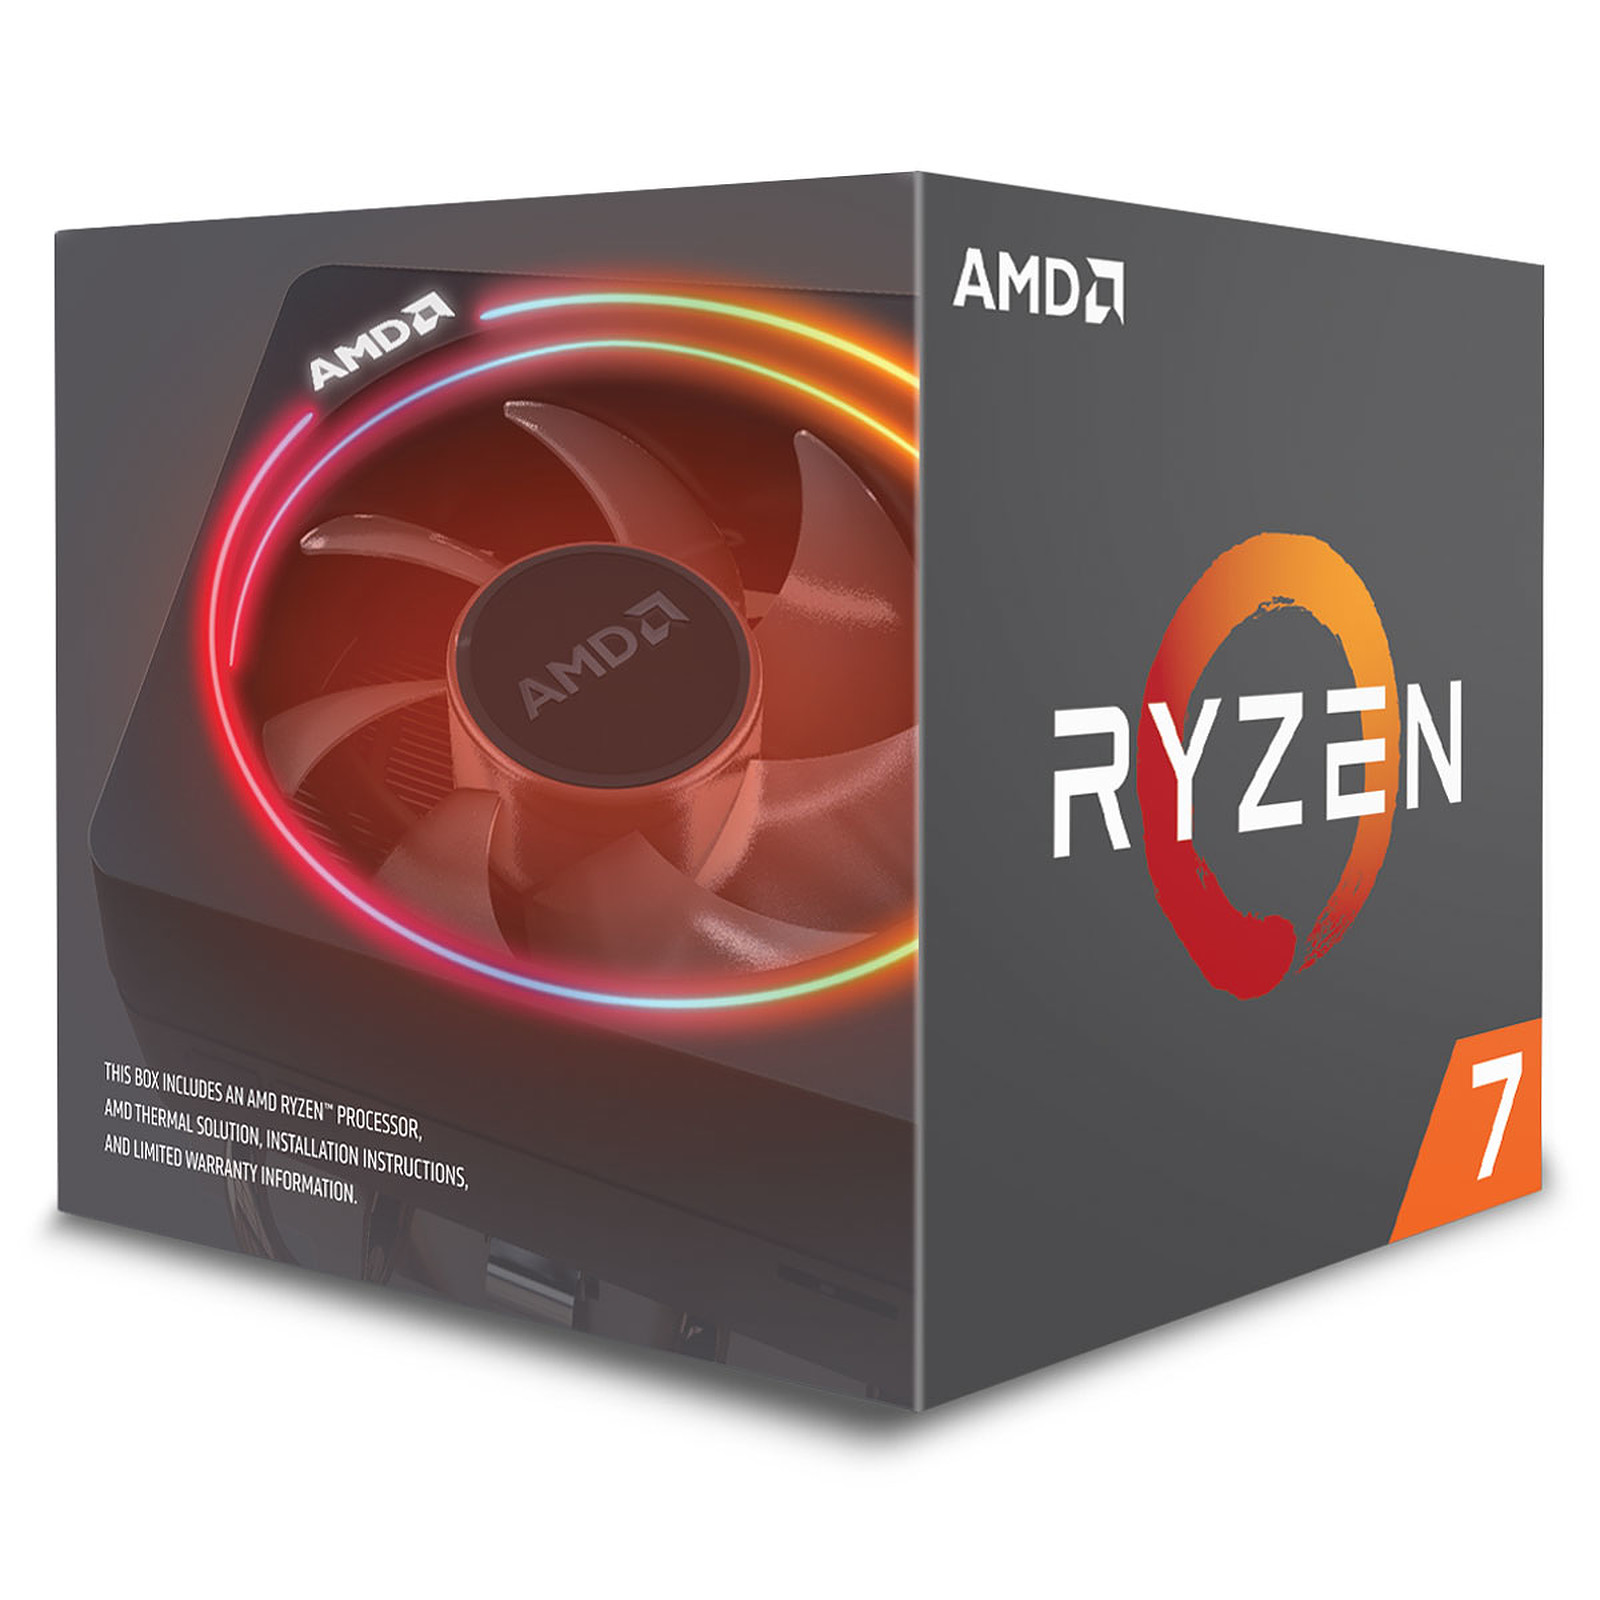 Processeur AMD 8 Core/16 Threads Socket AM4 Ryzen 7 2700X 20 Mo (Boîte), informatique ile de la Réunion, informatique-reunion.com